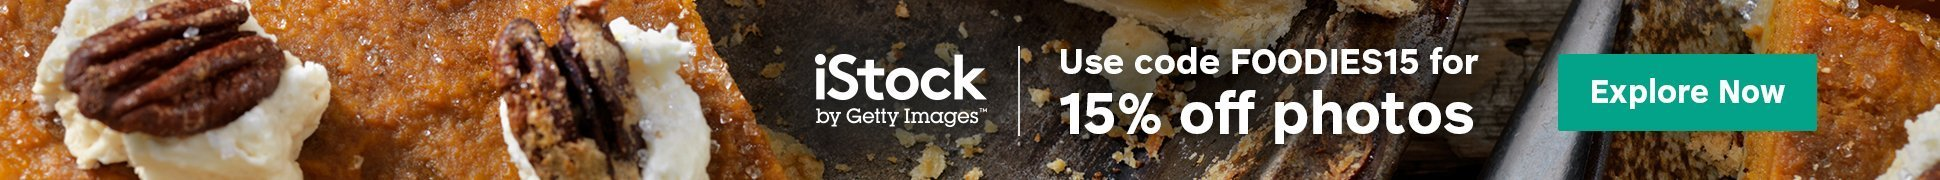 Sponsored by iStock